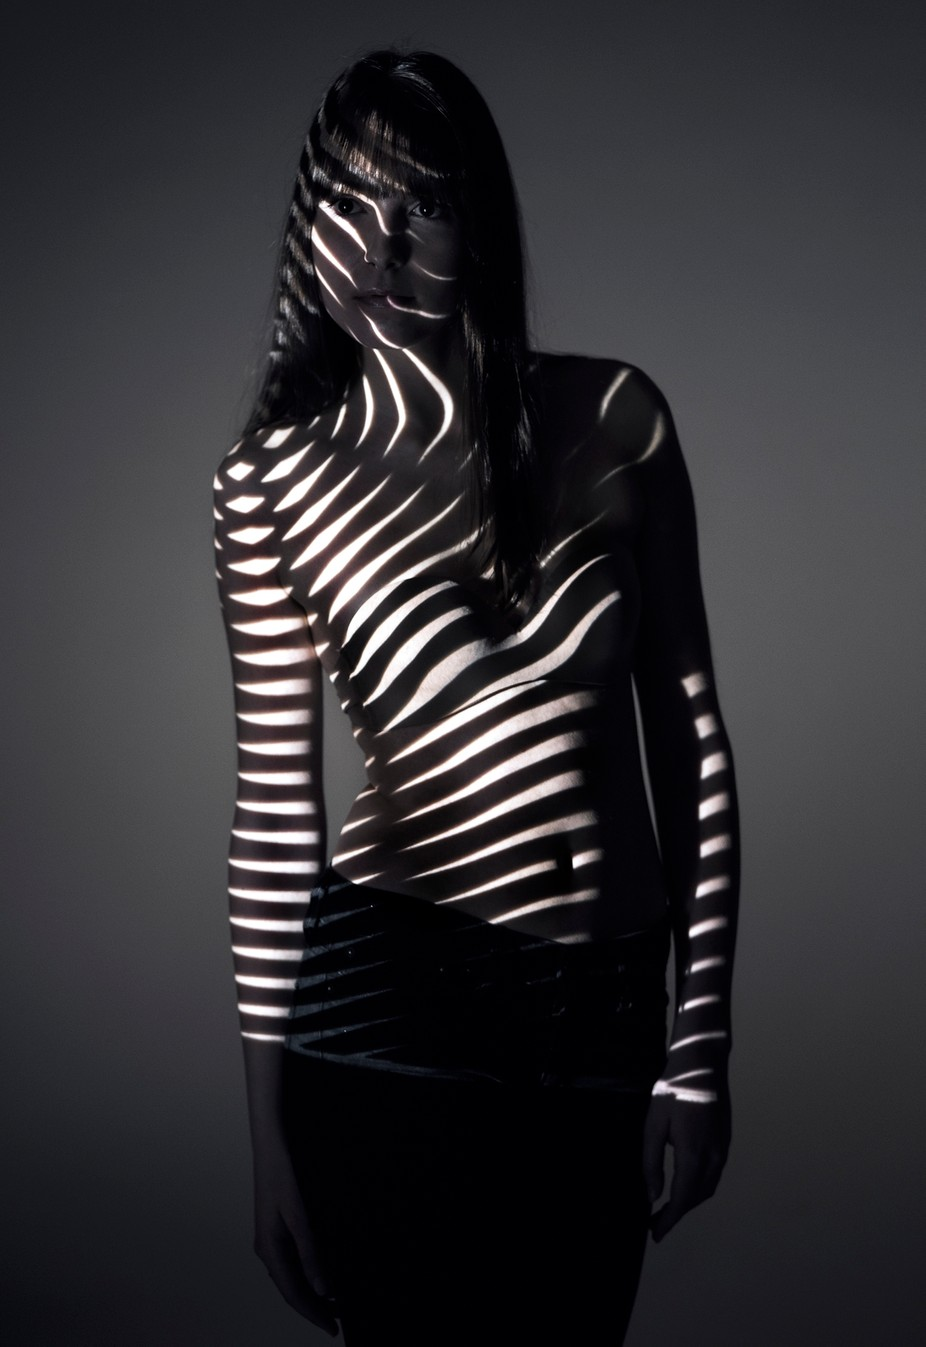 stripes02 by pernessnorbert - Playing With Light Photo Contest